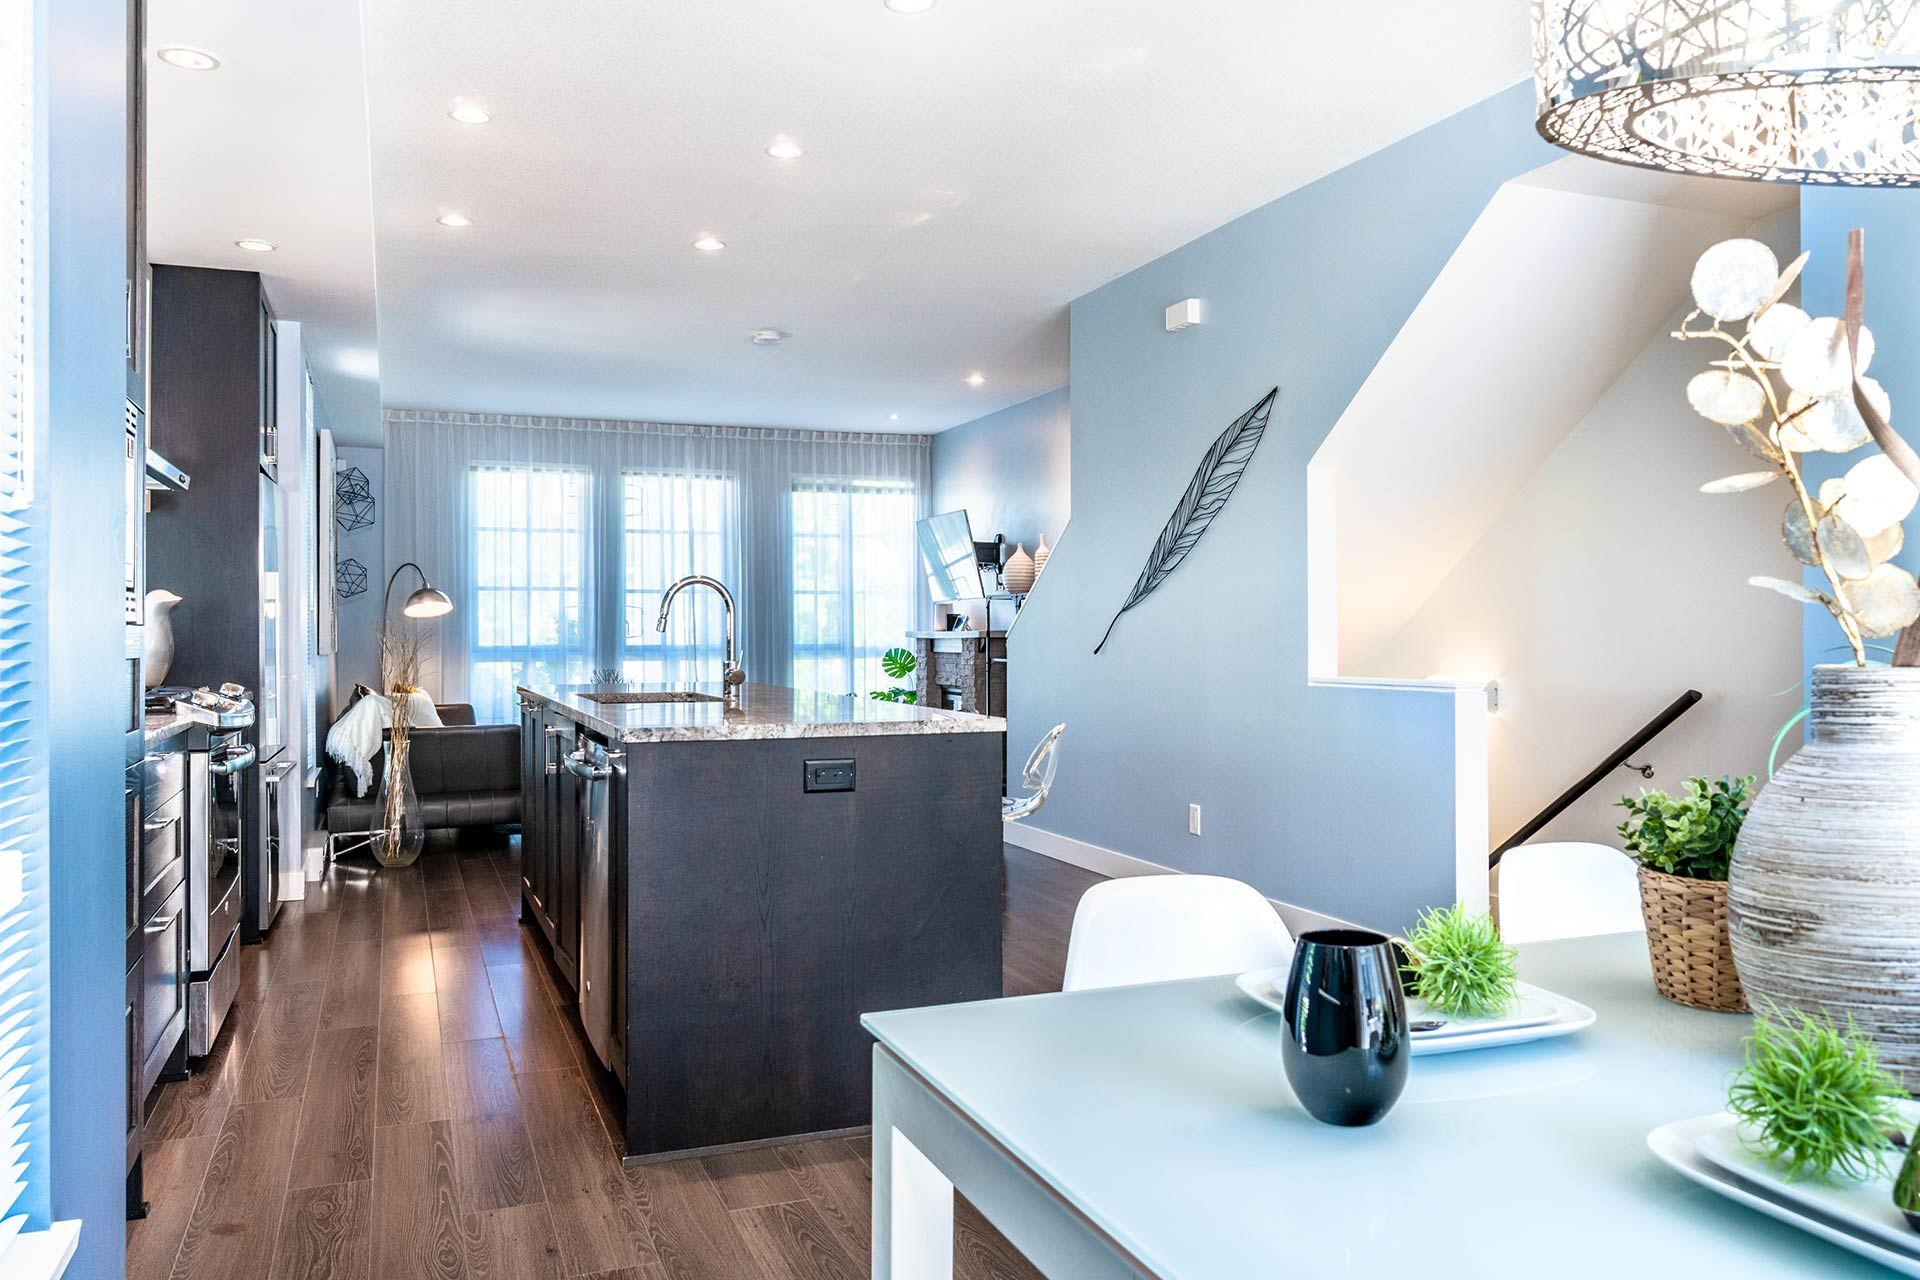 """Photo 14: Photos: 154 548 FOSTER Avenue in Coquitlam: Coquitlam West Townhouse for sale in """"BLACK + WHITE"""" : MLS®# R2587208"""